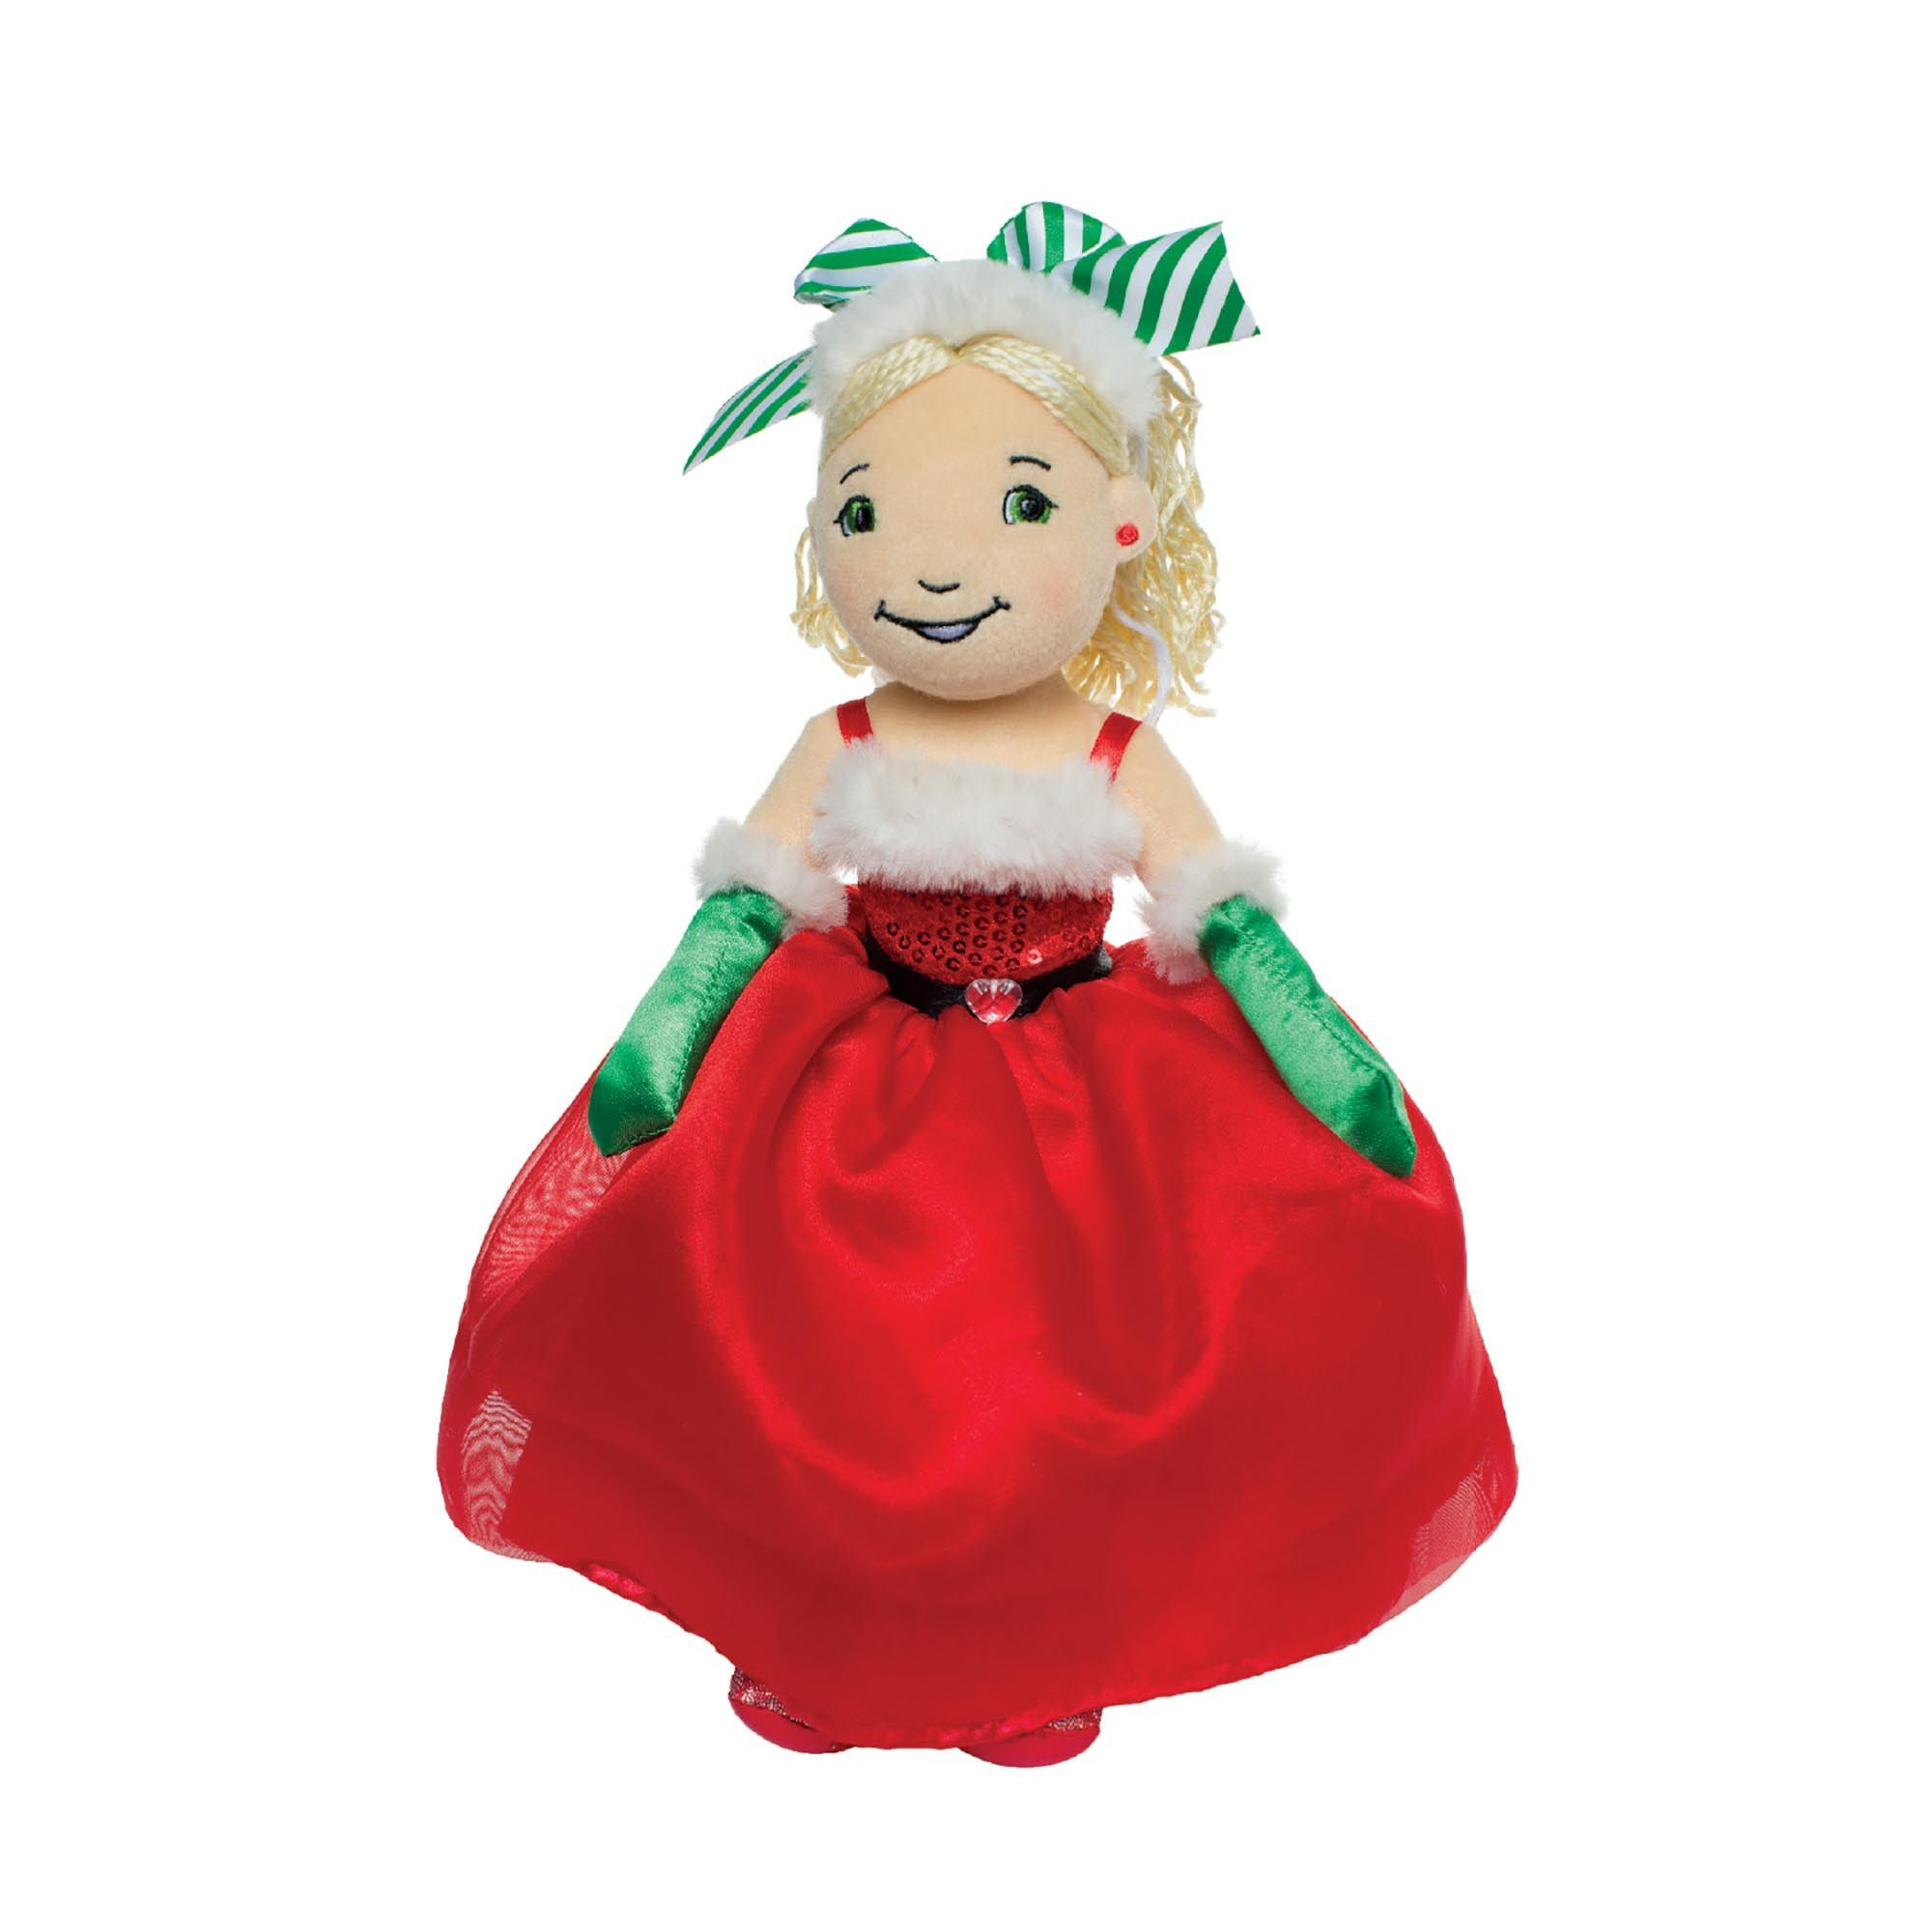 Groovy Girls Christmas Belle Holiday Doll Holiday Fashion Christmas Girl Manhattan Toy